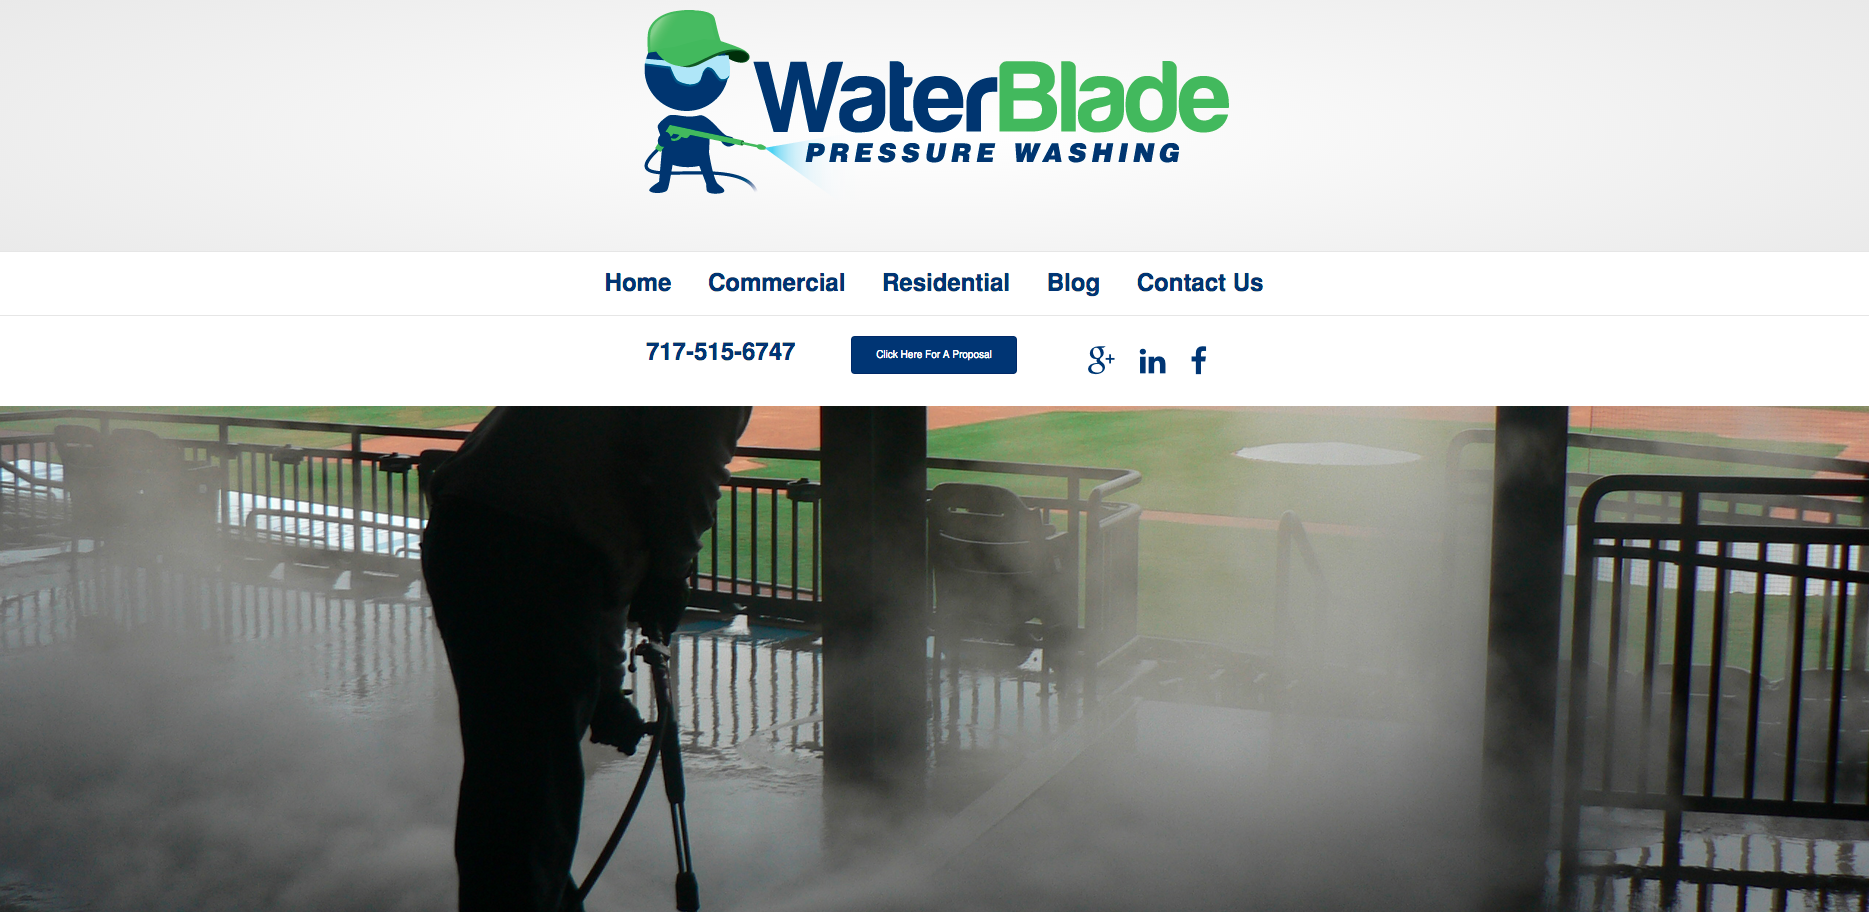 WaterBlade Pressure Washing